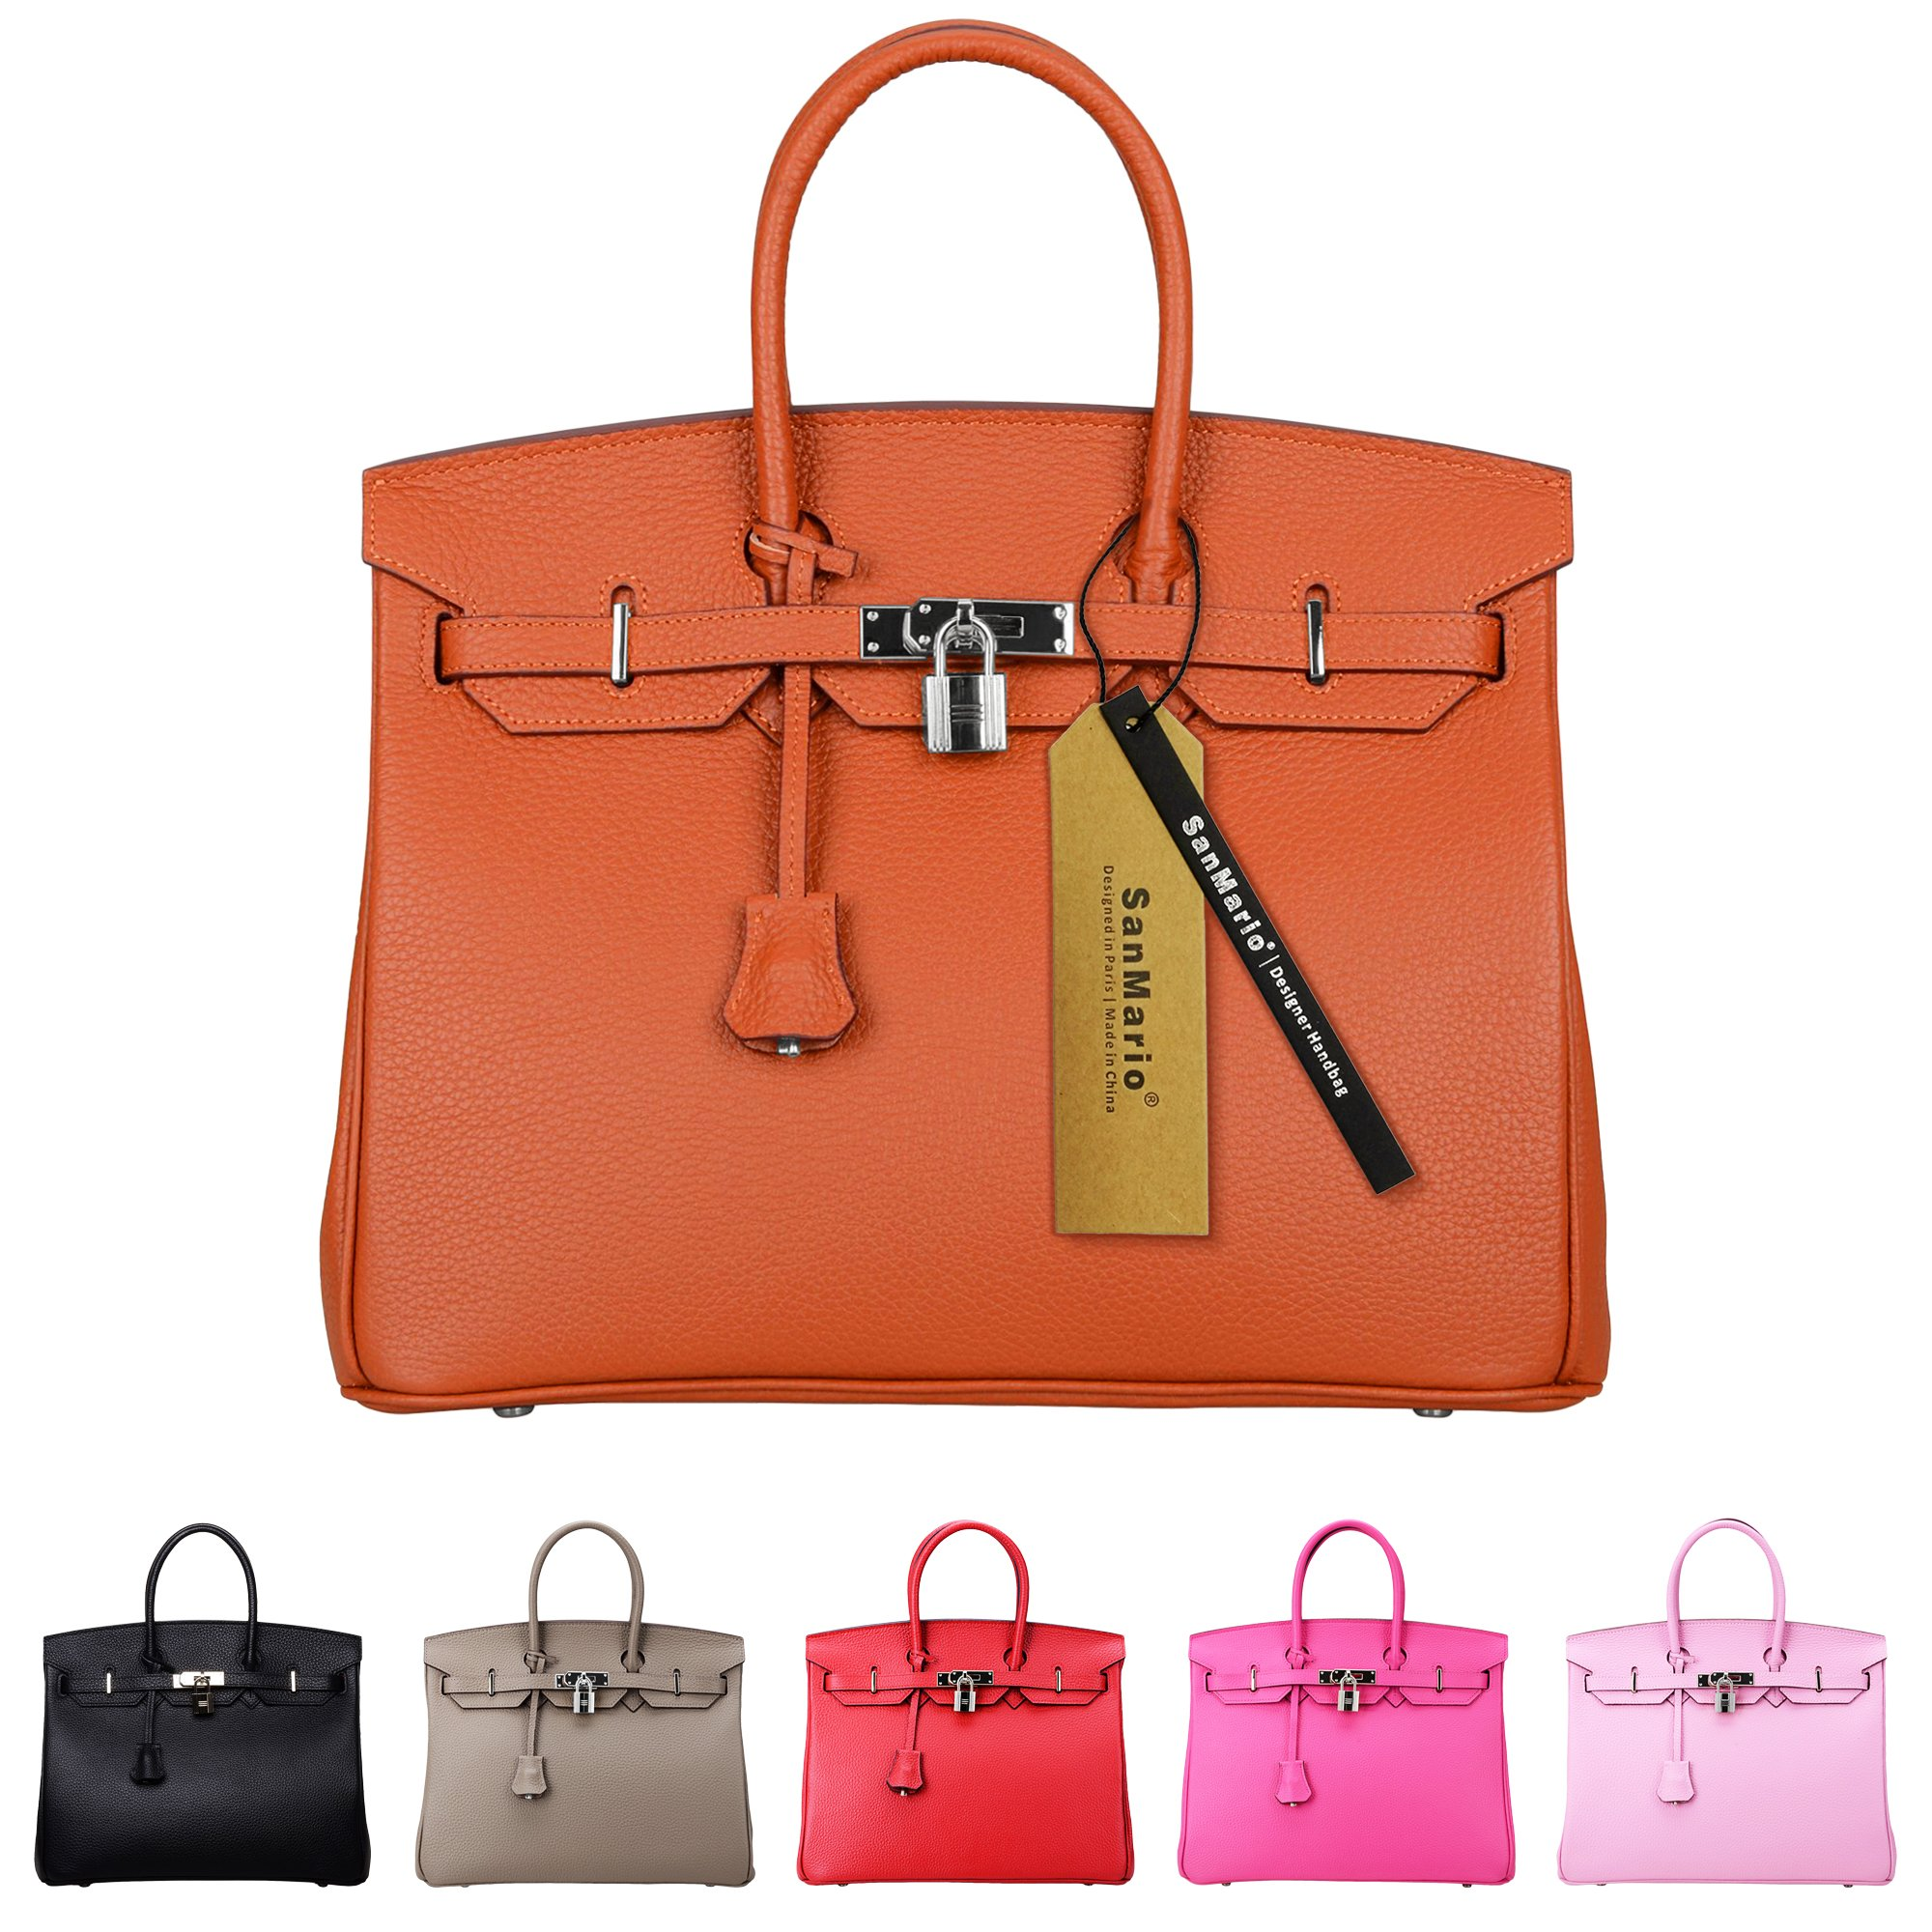 SanMario Designer Handbag Top Handle Padlock Women's Leather Bag with Silver Hardware Orange 35cm/14''